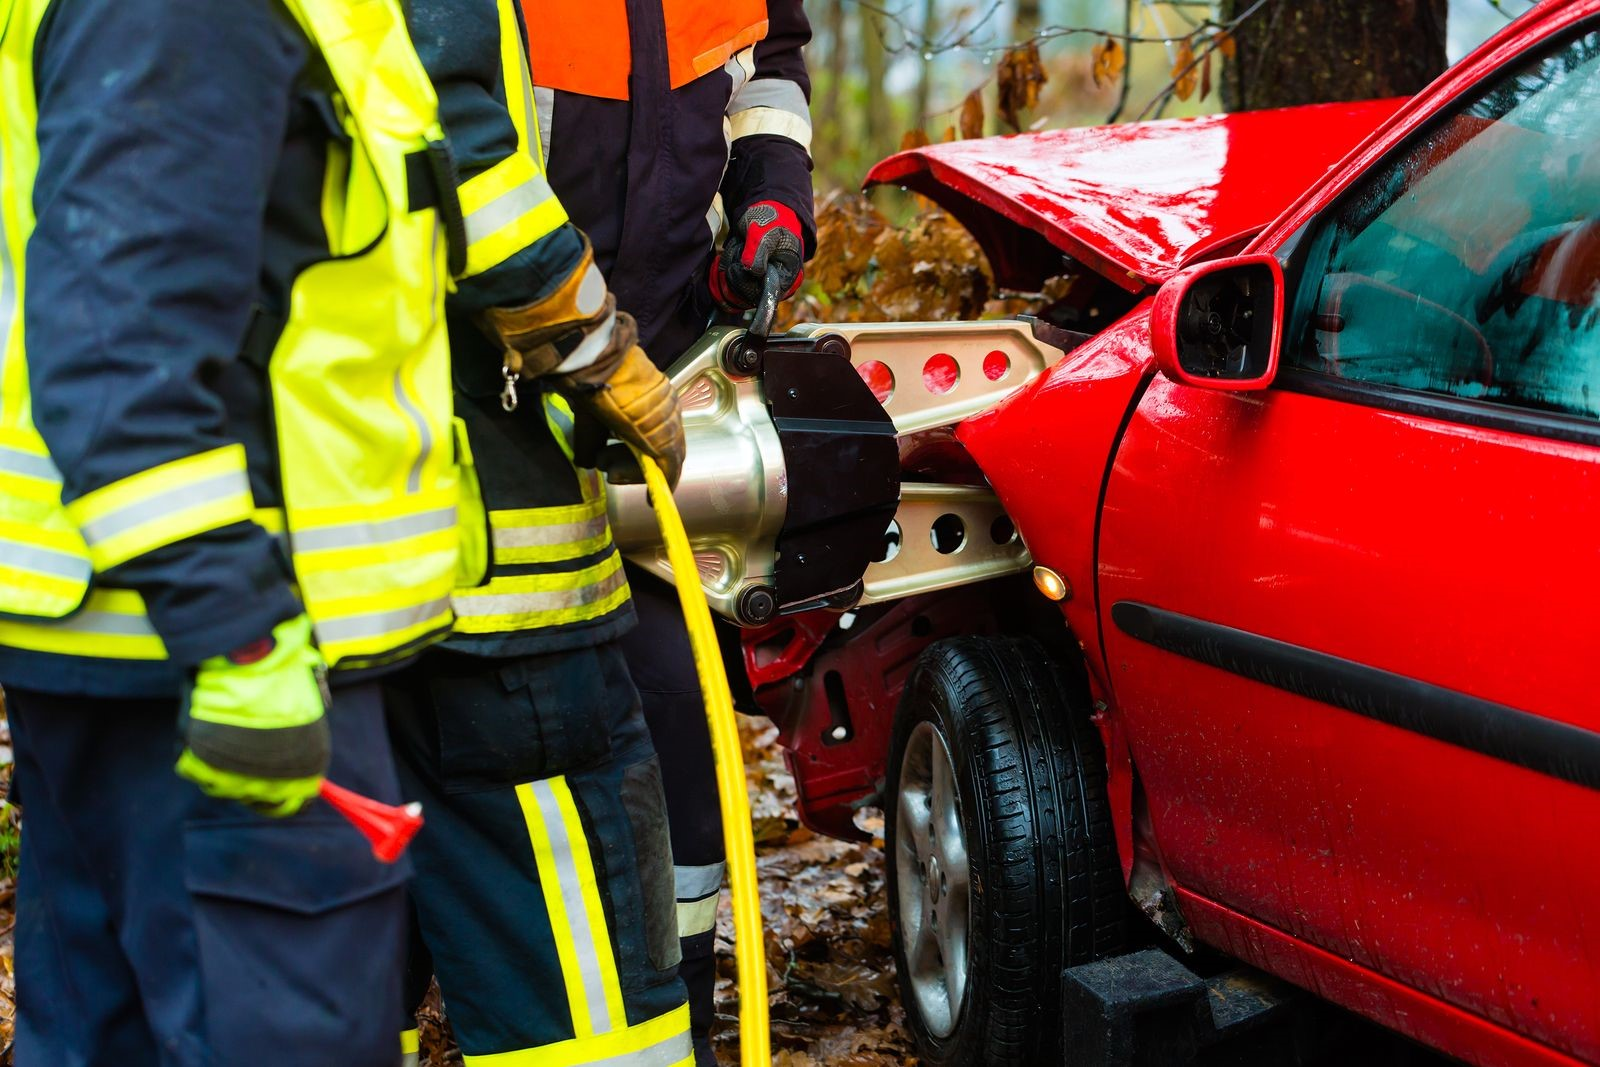 Adult Obesity in U.S. Makes Vehicle Extrication After Accidents Tough